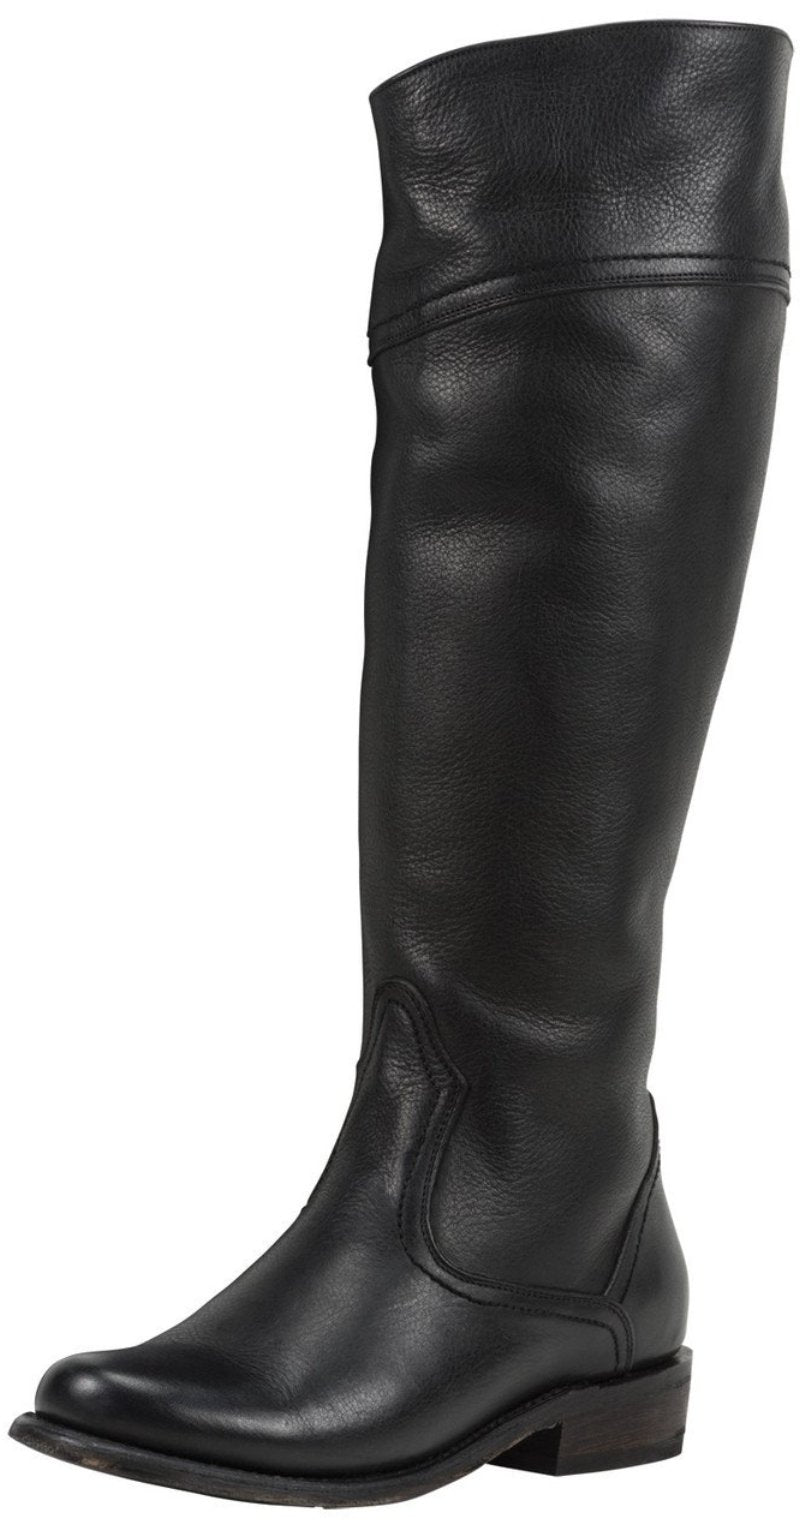 Women's Black Star Black Capricornus Riding Boot - 6512